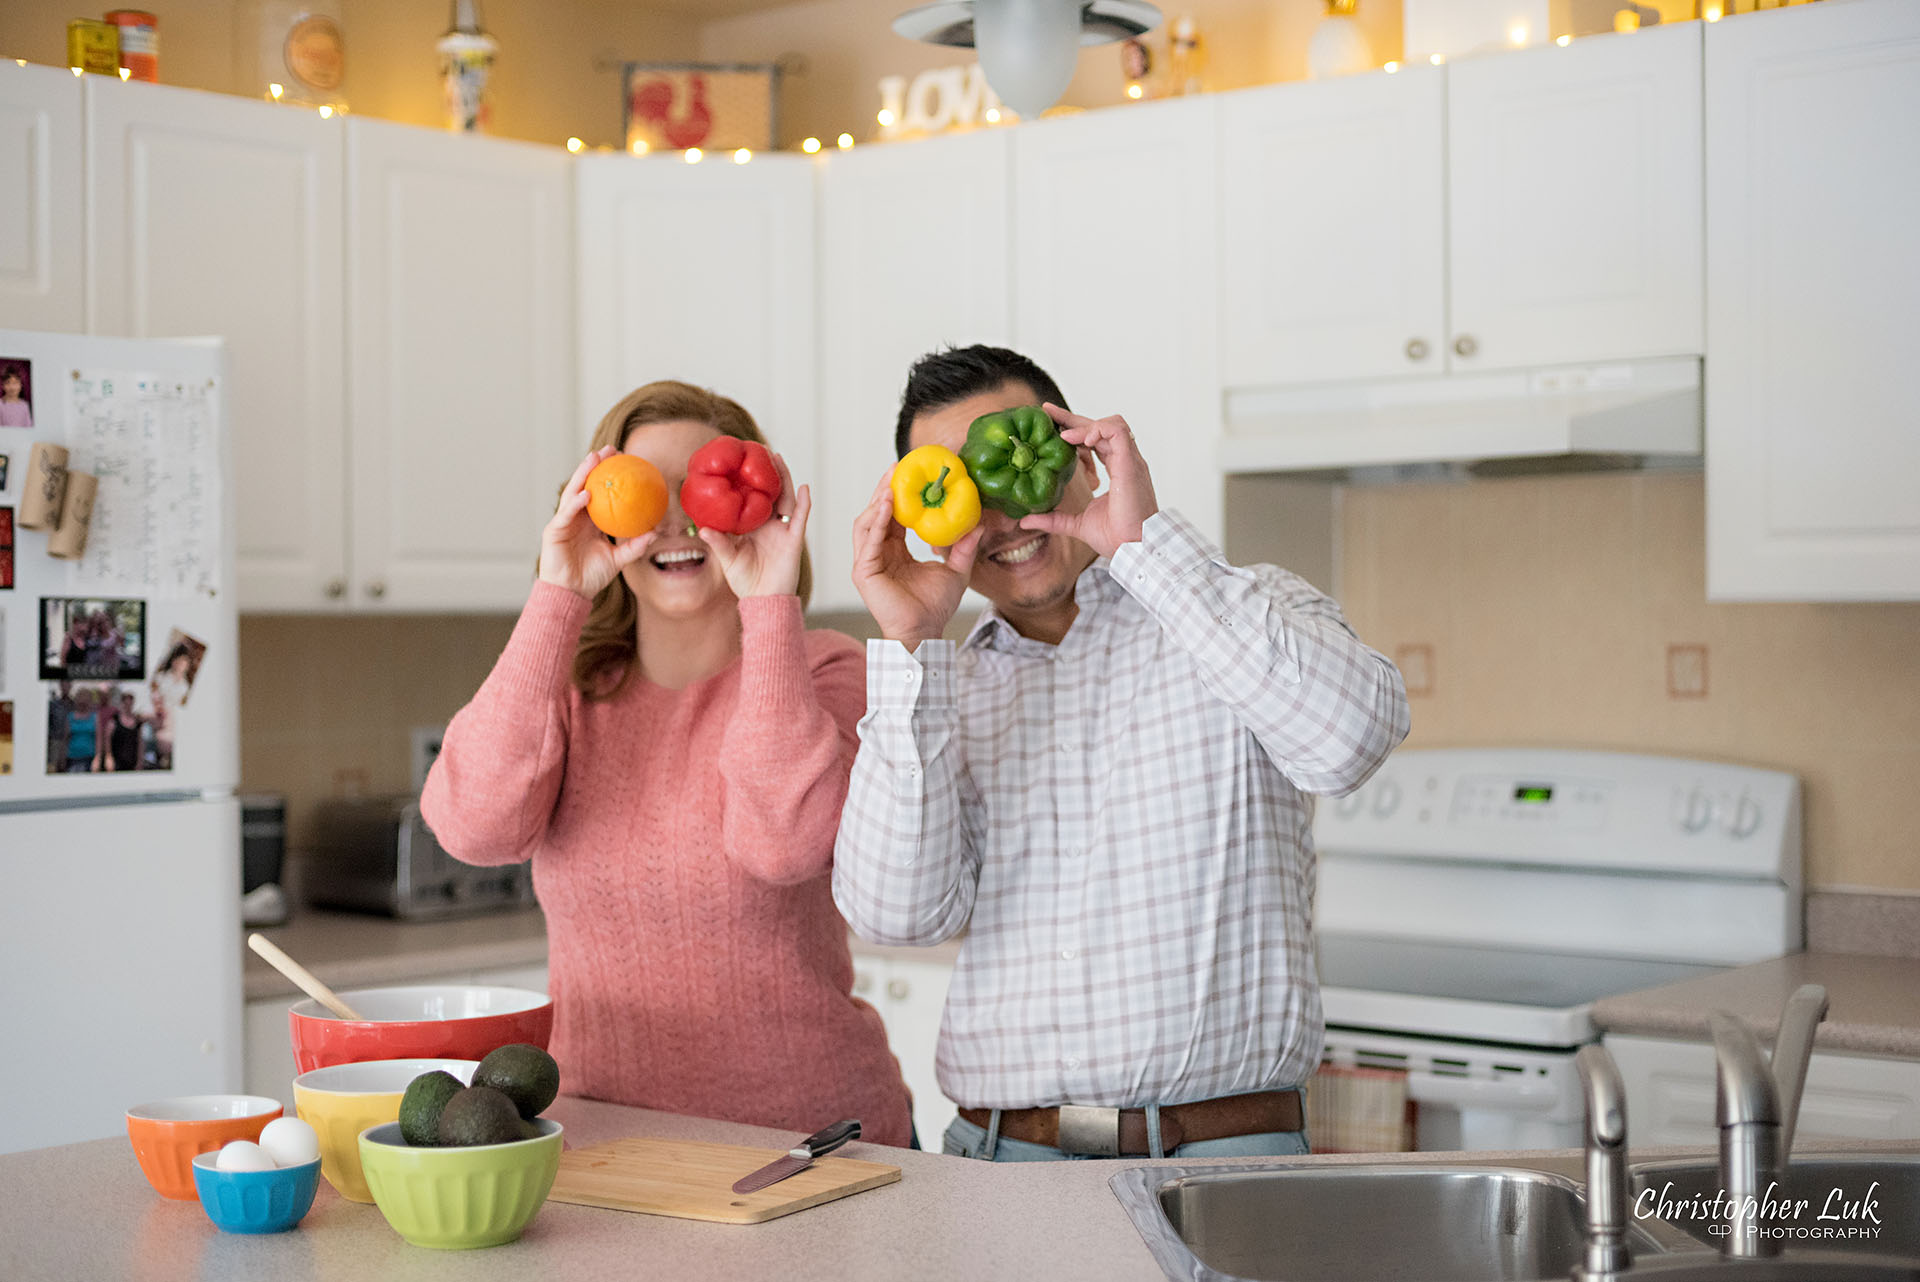 Christopher Luk Toronto Markham Family Adoption LifeBook Photographer Pictures Photos Children Session Parents Kitchen Preparation Life at Home Colourful Fun Bell Peppers Orange Eyes Eyeballs Funny